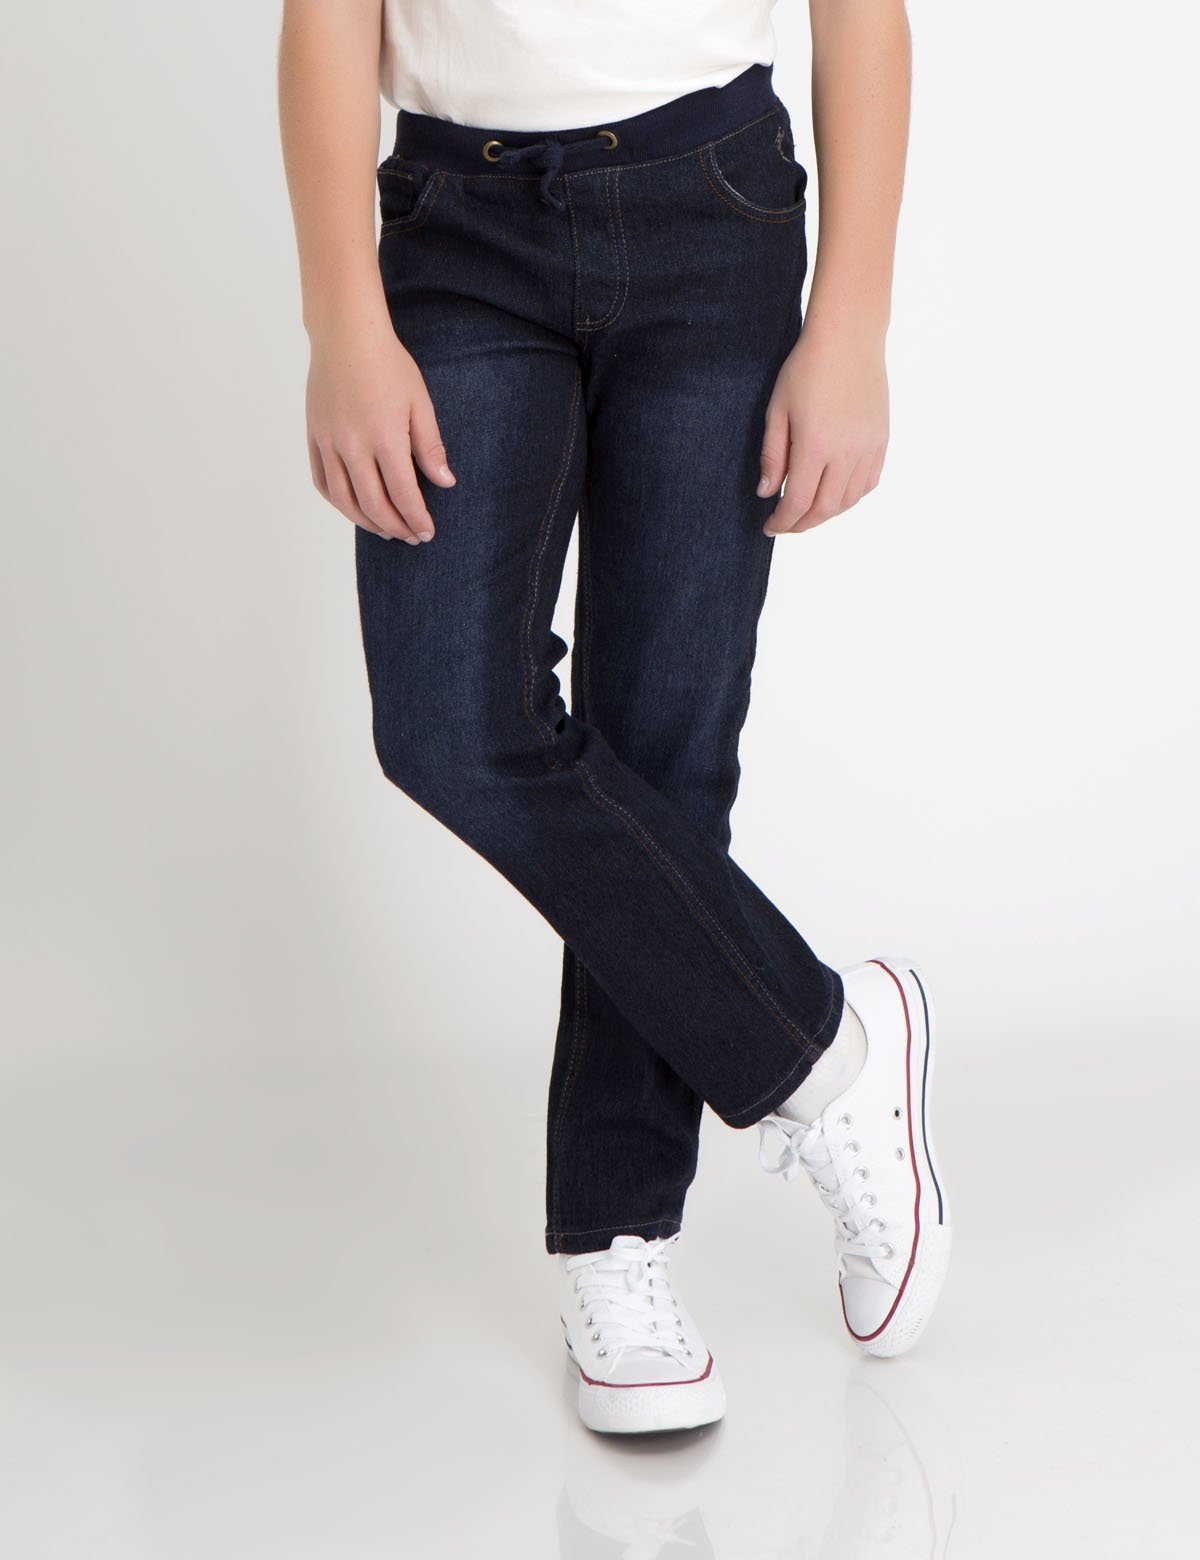 RIBBED DRAWSTRING WAIST JEANS - U.S. Polo Assn.